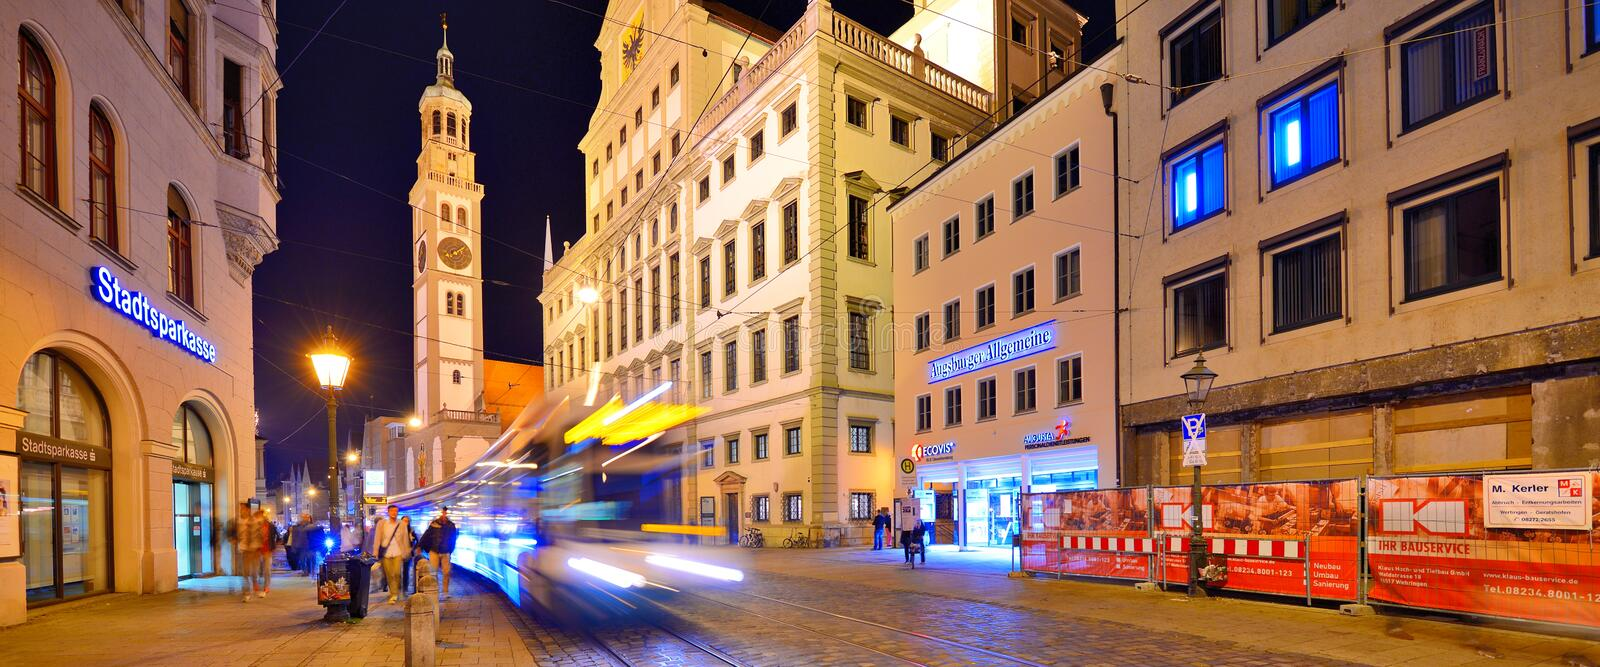 Augsburg. Traffic in Rathaus Platz September 28, 2013 in Augsburg, Germany. The Bavarian town was once a Free Imperial City for over 500 years royalty free stock photography